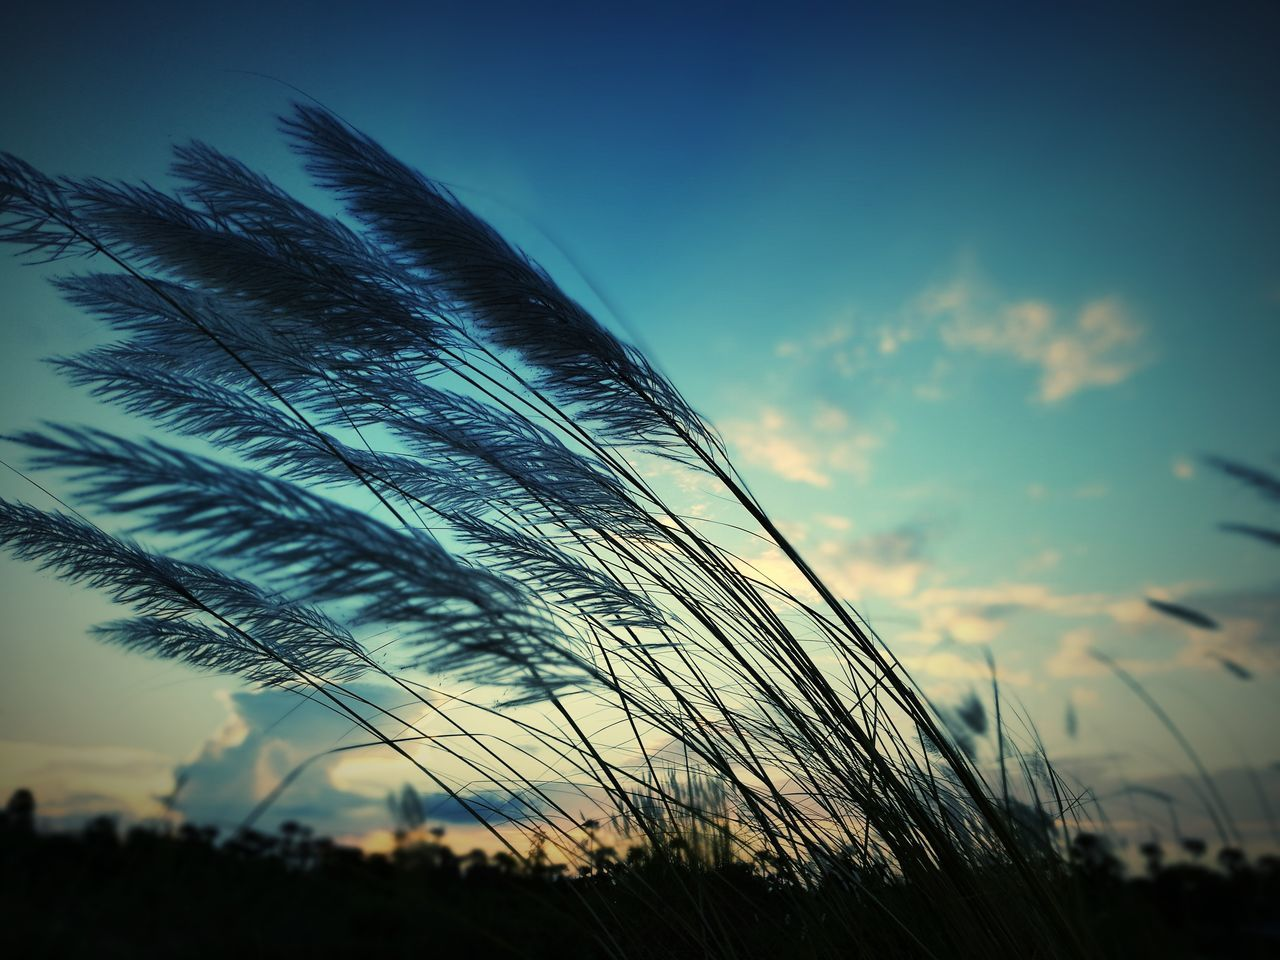 nature, sky, beauty in nature, no people, low angle view, growth, sunset, outdoors, close-up, silhouette, cloud - sky, tranquility, day, fragility